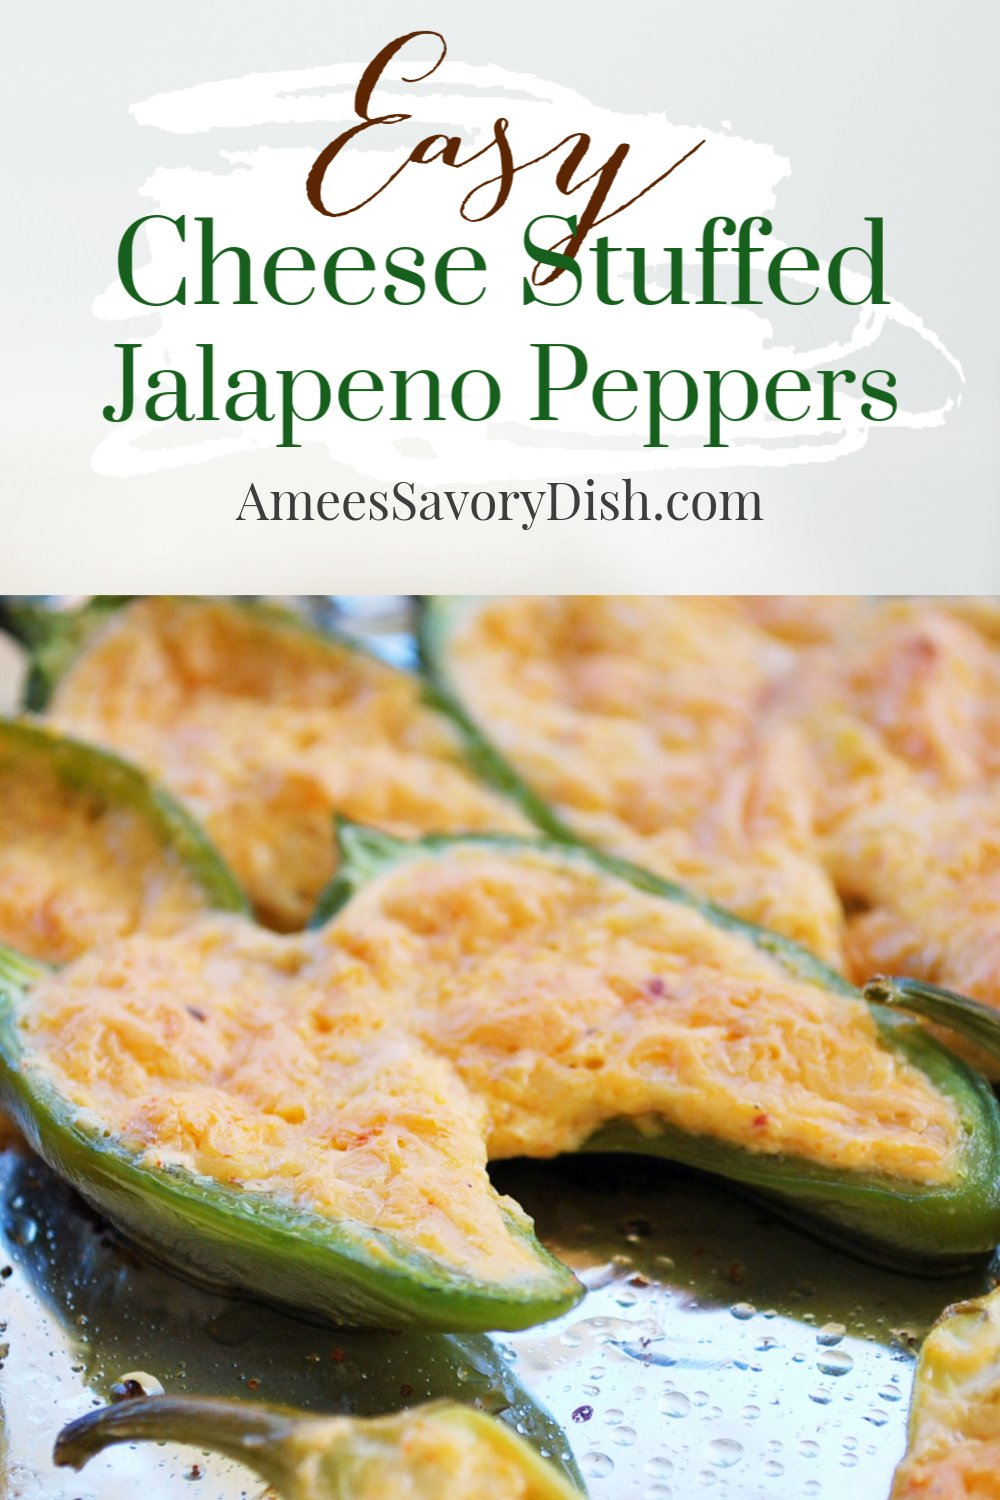 These baked cheese stuffed jalapeno peppers are delicious as an appetizer or game day snacks. Hot peppers are stuffed with a mixture of spicy cheddar cheese and cream cheese, then baked until the peppers are soft and the cheese is melted and golden brown. via @Ameecooks